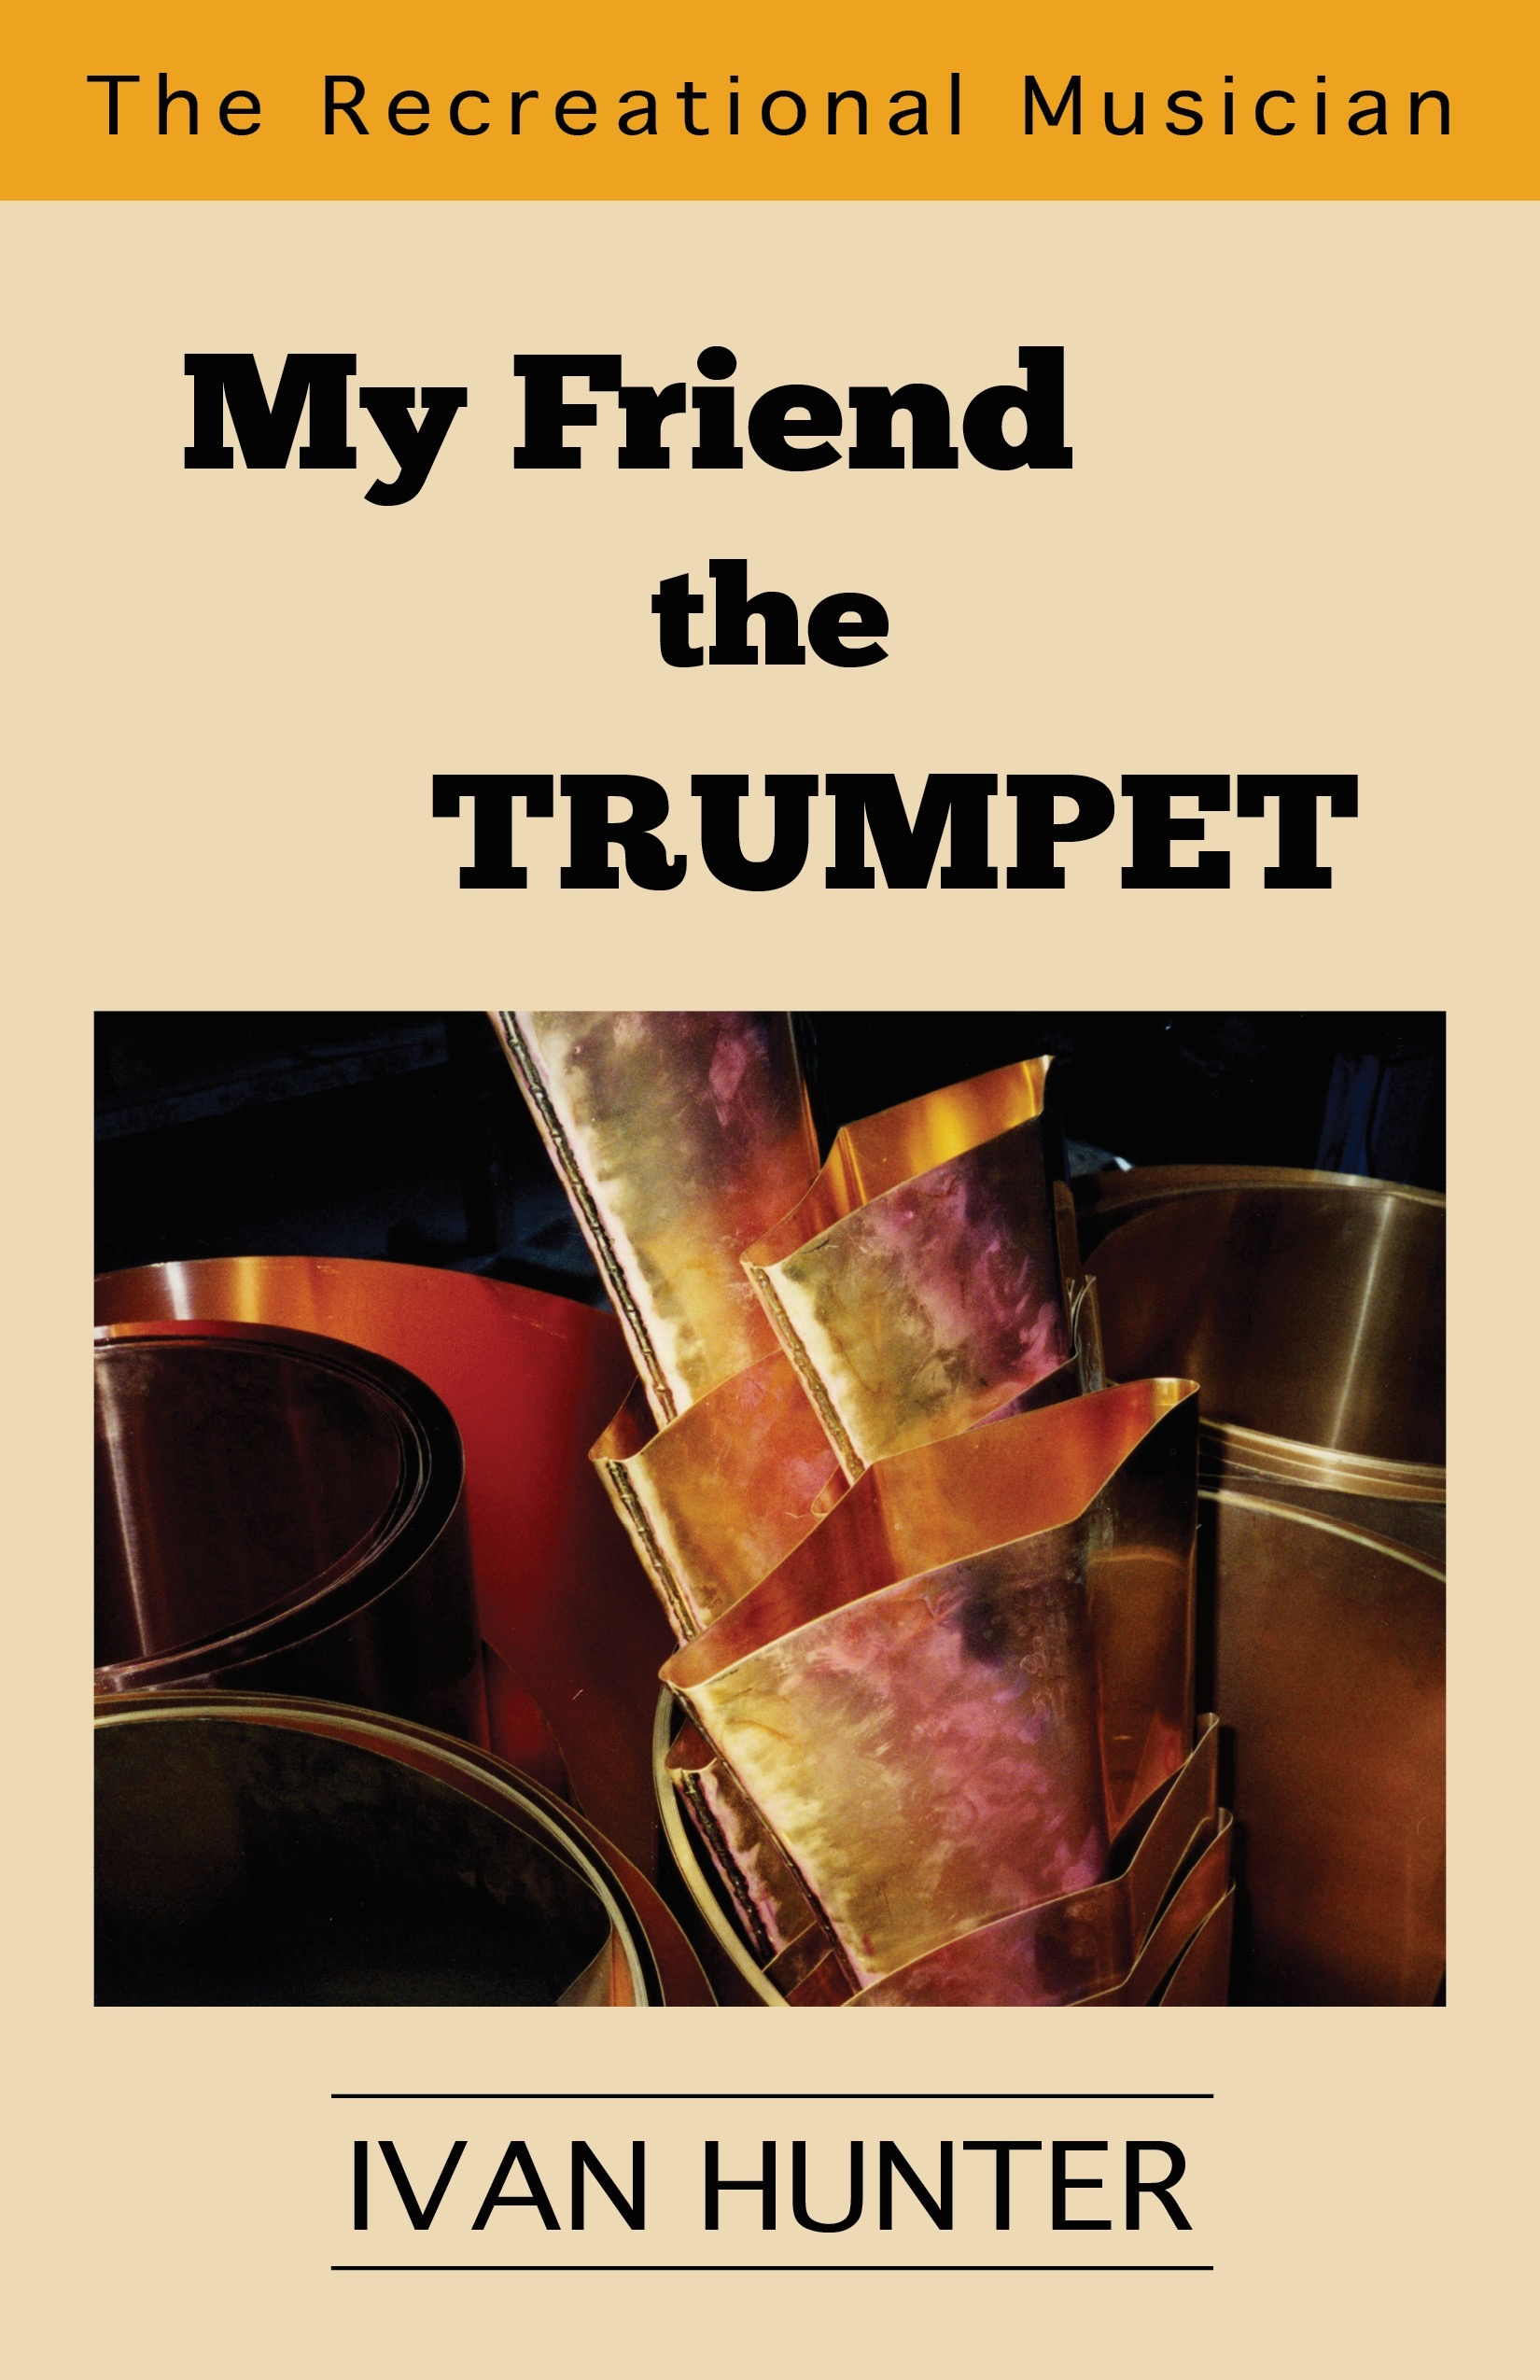 My Friend the Trumpet cover 1602203.jpeg